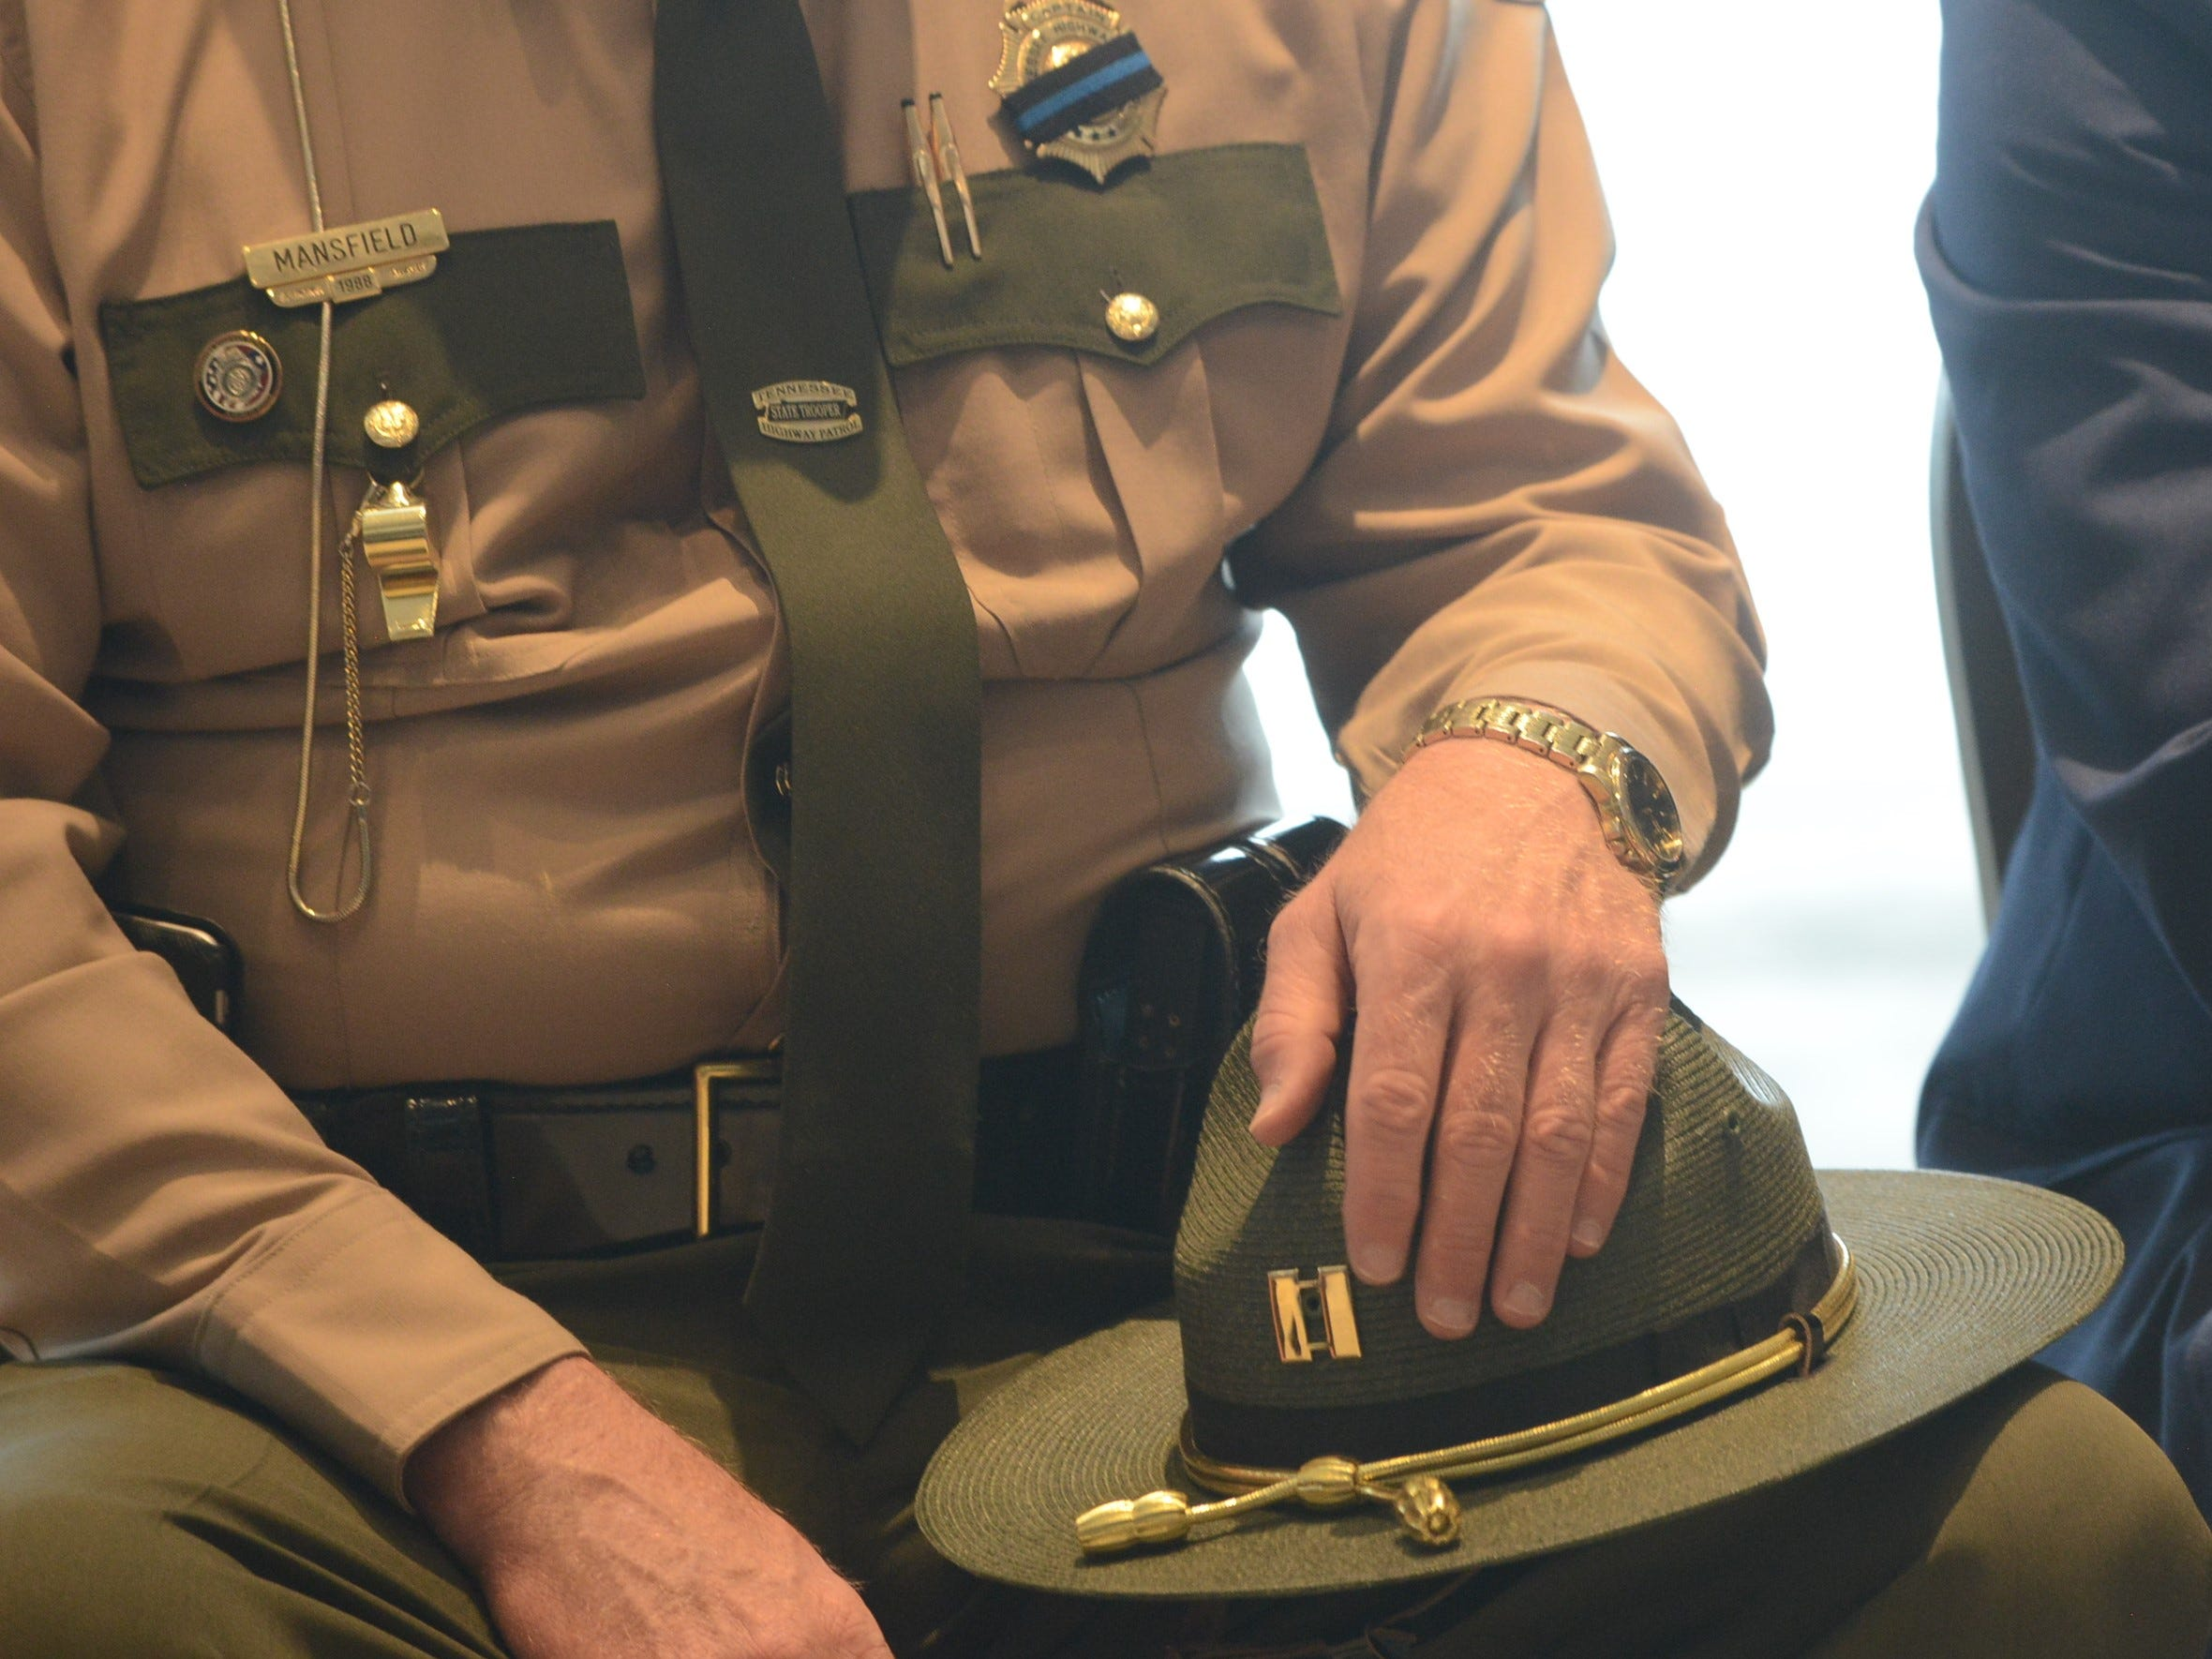 Tennessee Highway Patrol Captain Curtis Mansfield holds his hat on his knee during the National Law Enforcement Memorial Service at the Carl Perkins Civic Center in Jackson on Wednesday, May 15, 2019.